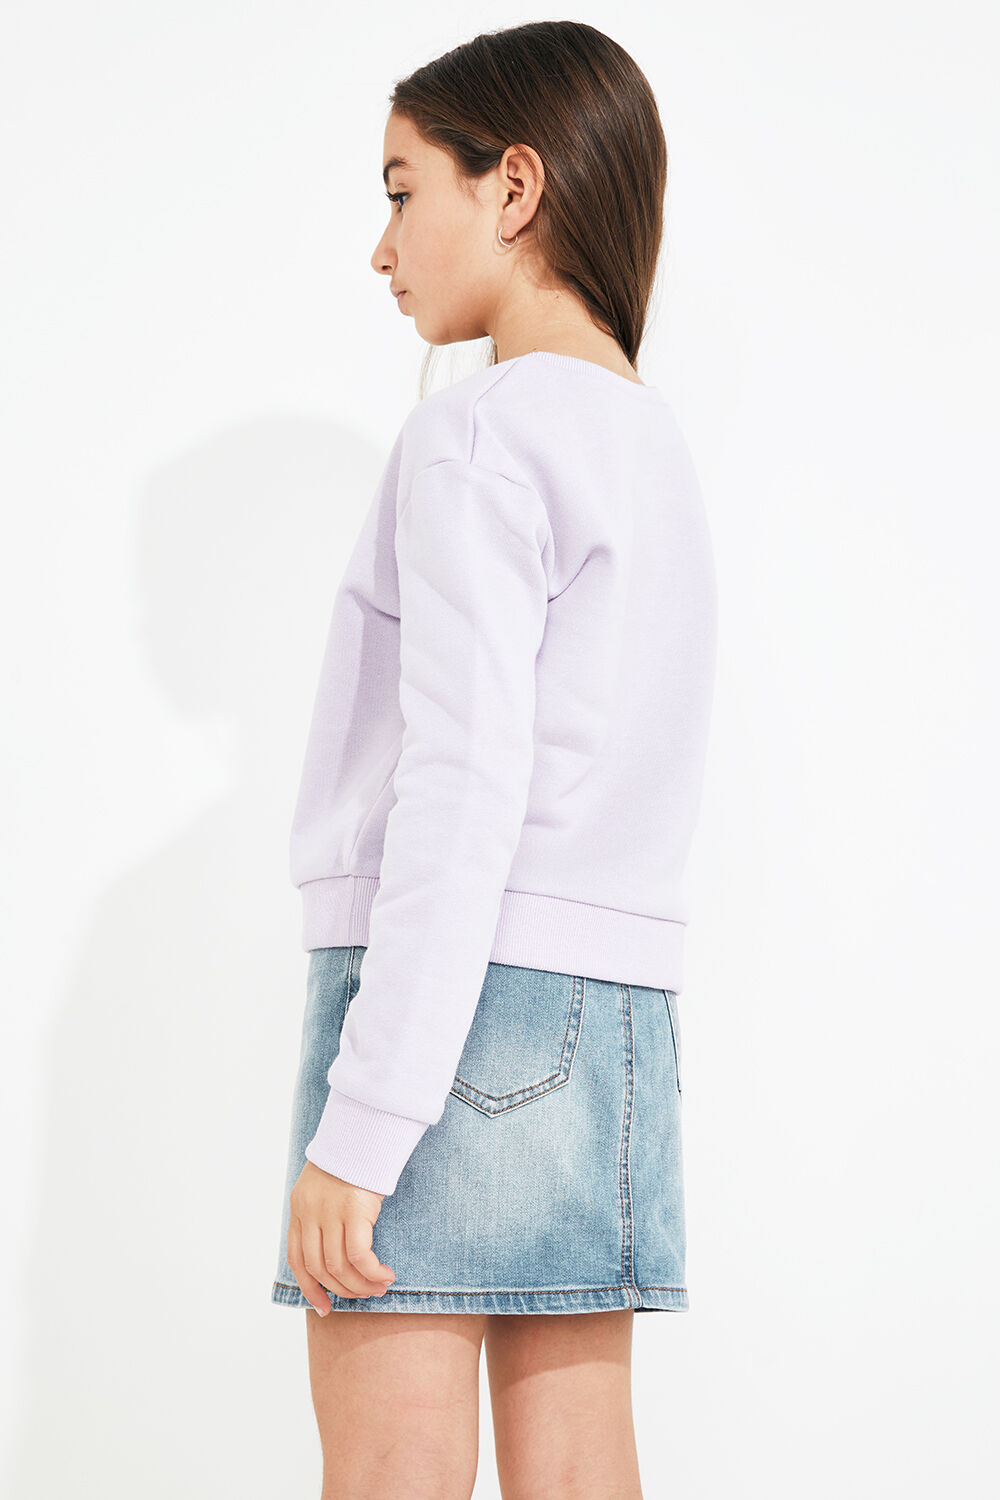 JUNIOR GIRL BDT SWEATER  in colour GRAY LILAC